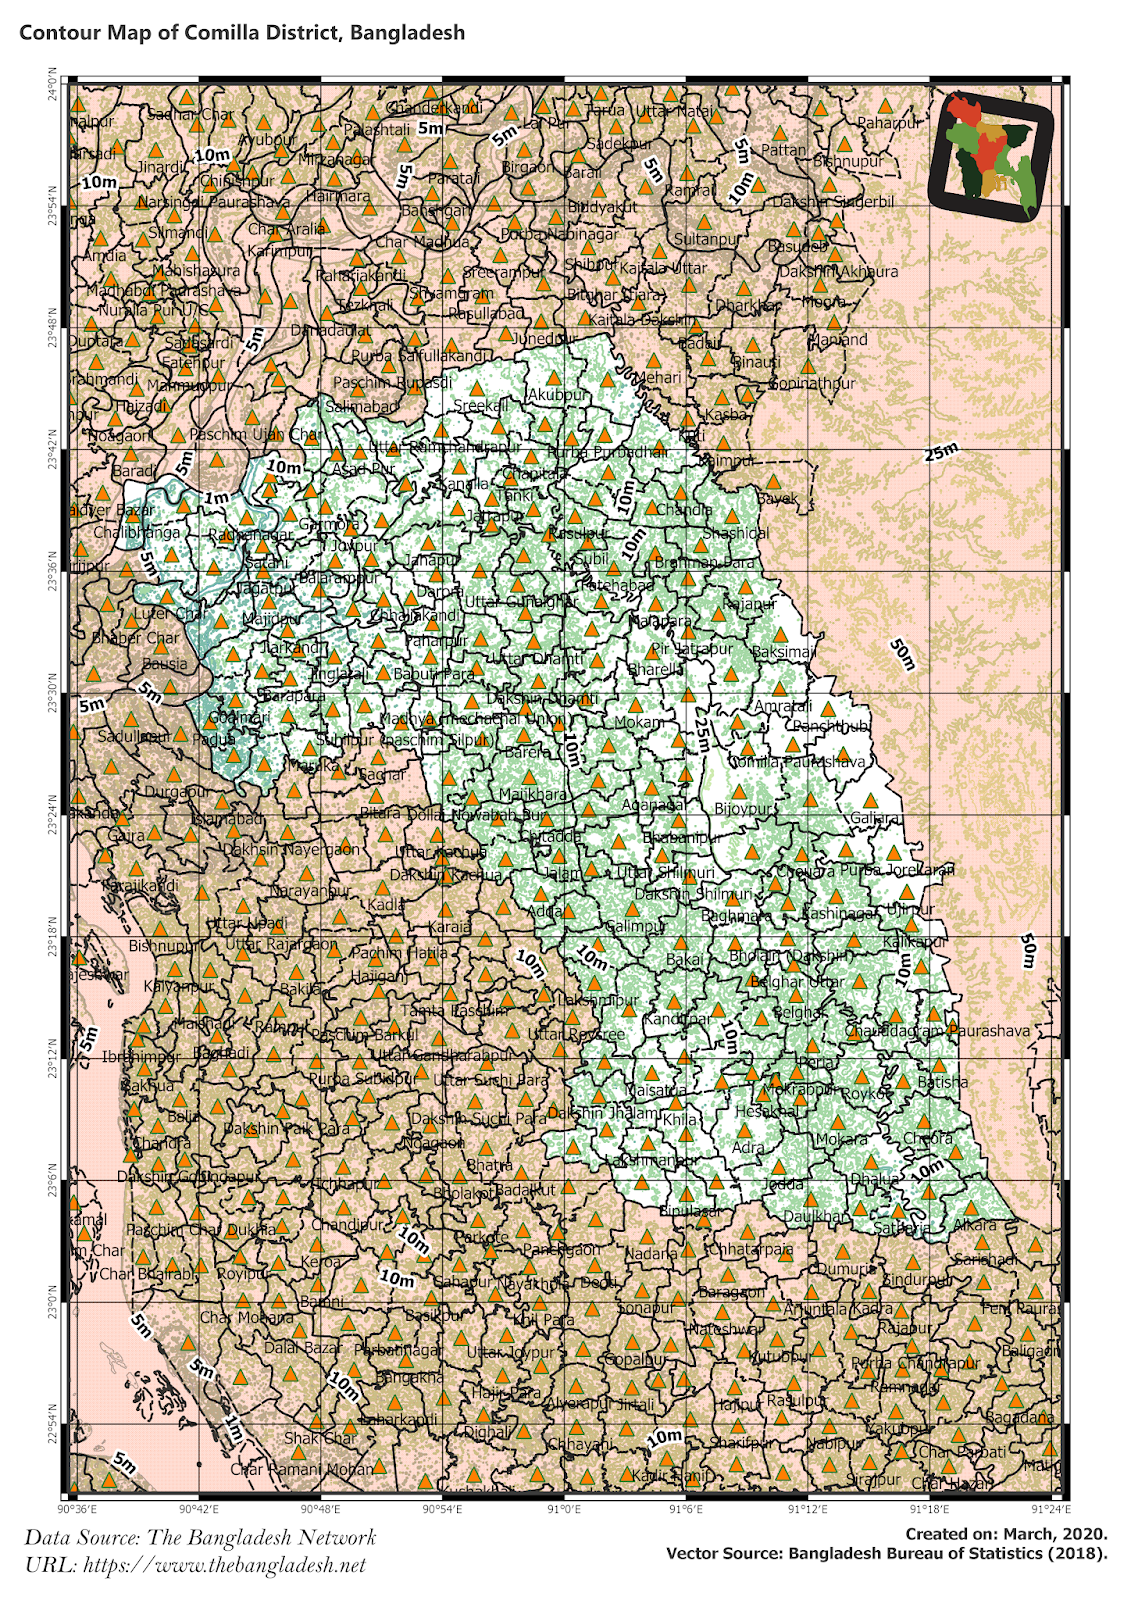 Elevation Map of Comilla District of Bangladesh